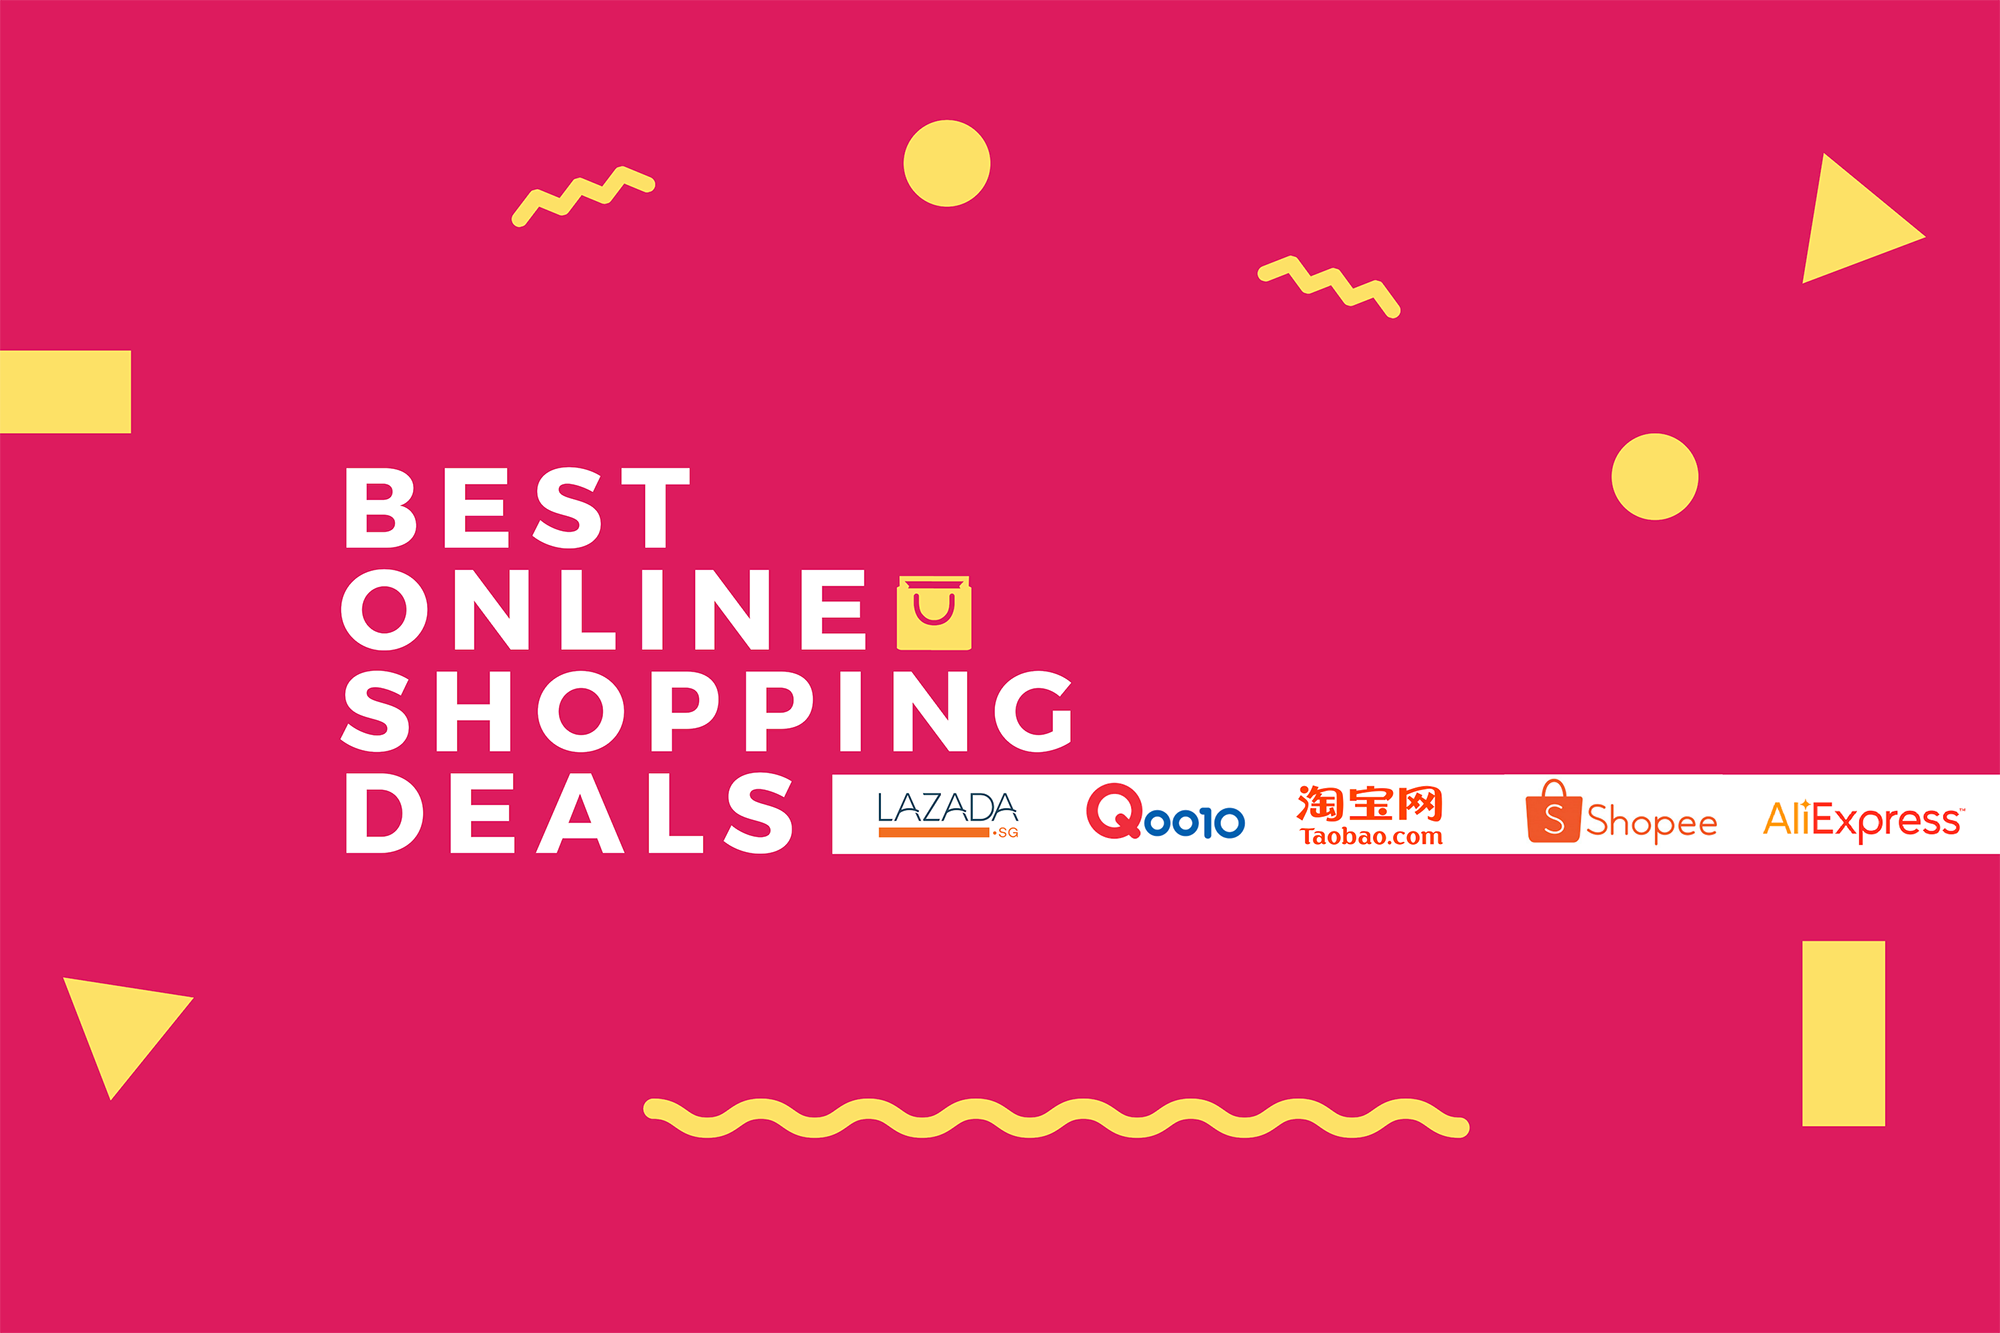 ebc47cecbe Lazada, Shopee, Taobao, Qoo10, AliExpress: Here Are The Best Deals On These  Online Shopping Websites This Week